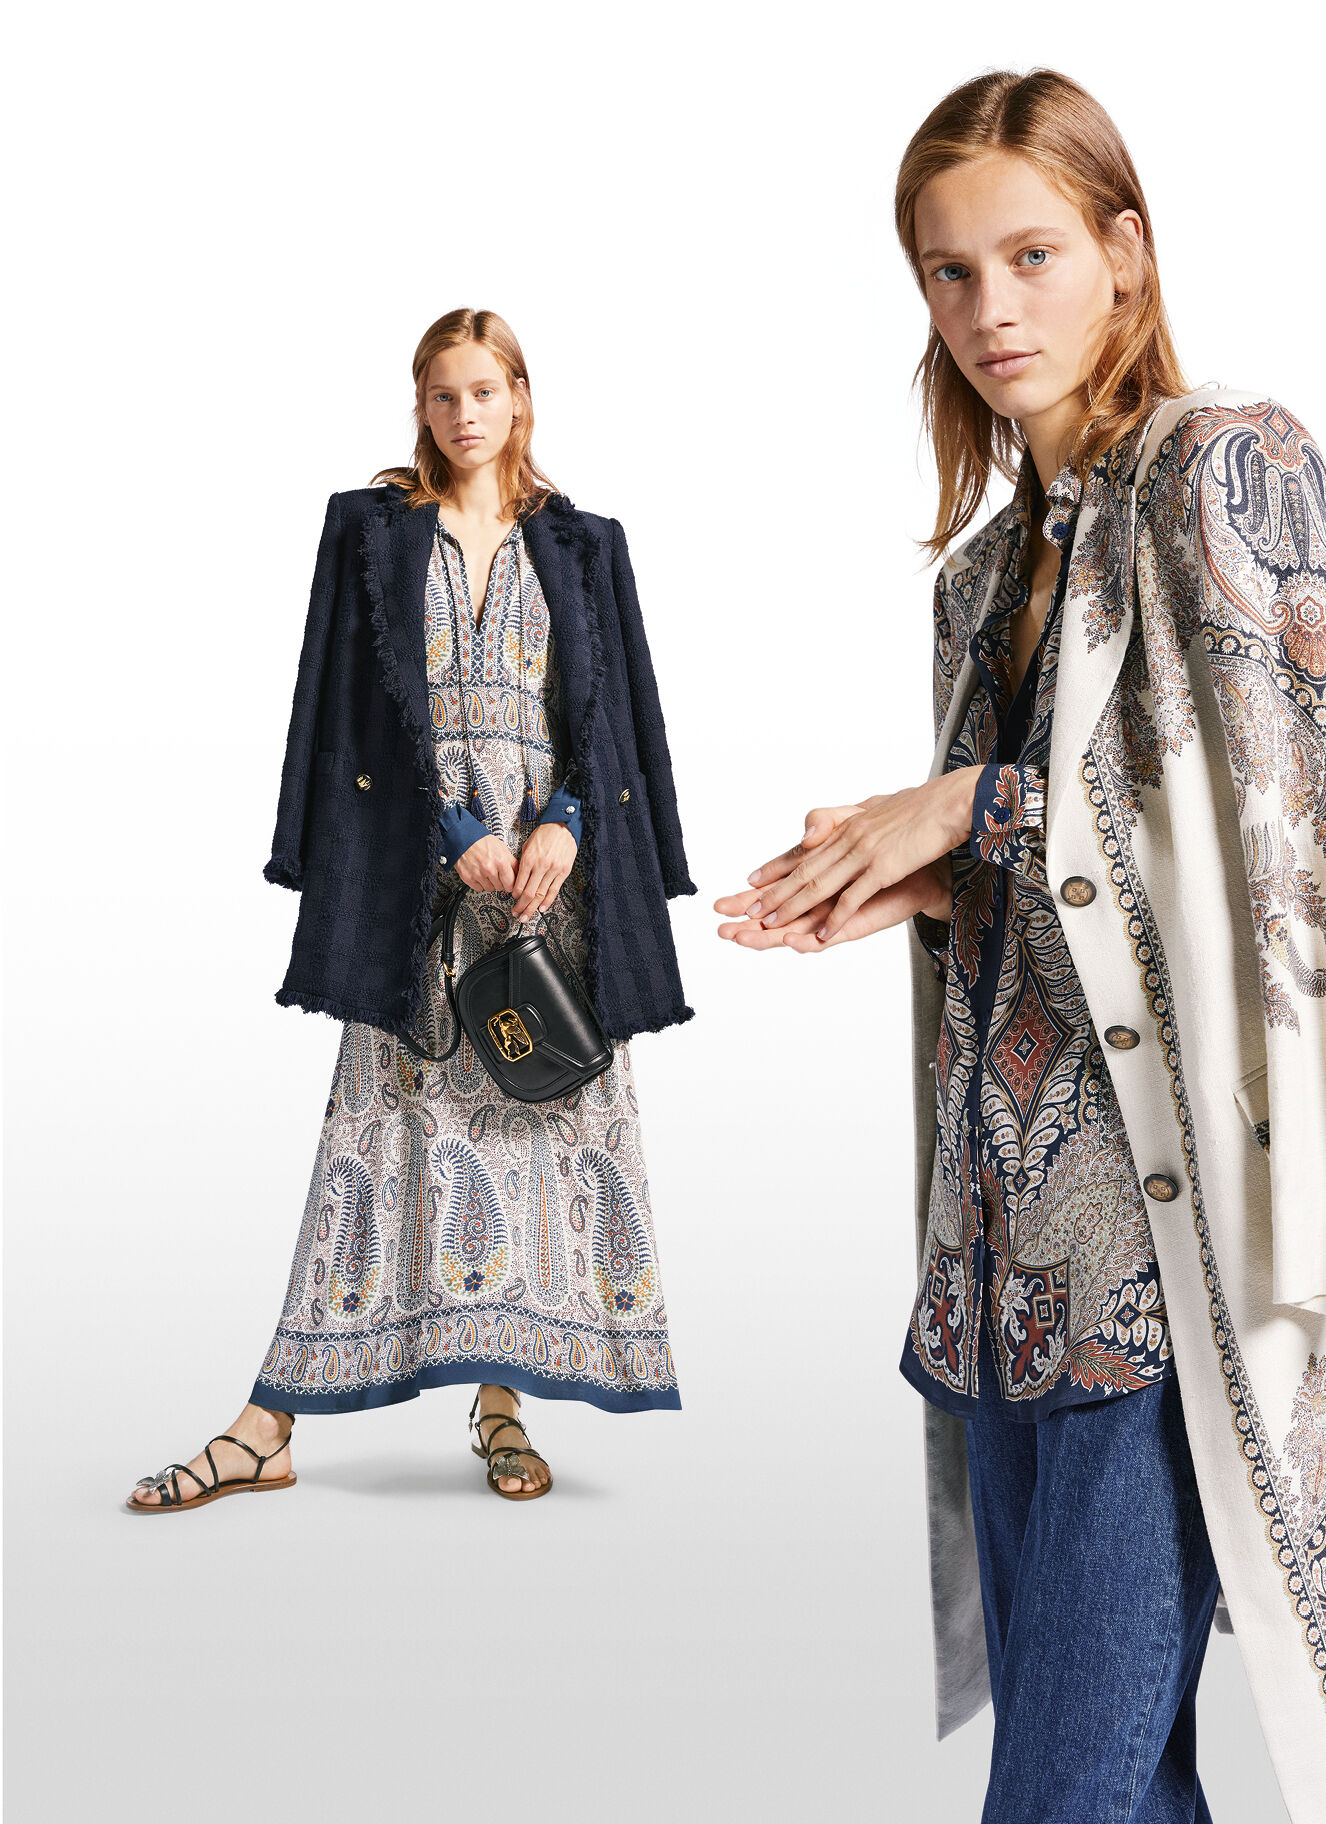 ETRO_SS21_Unisex_Catalogue_62